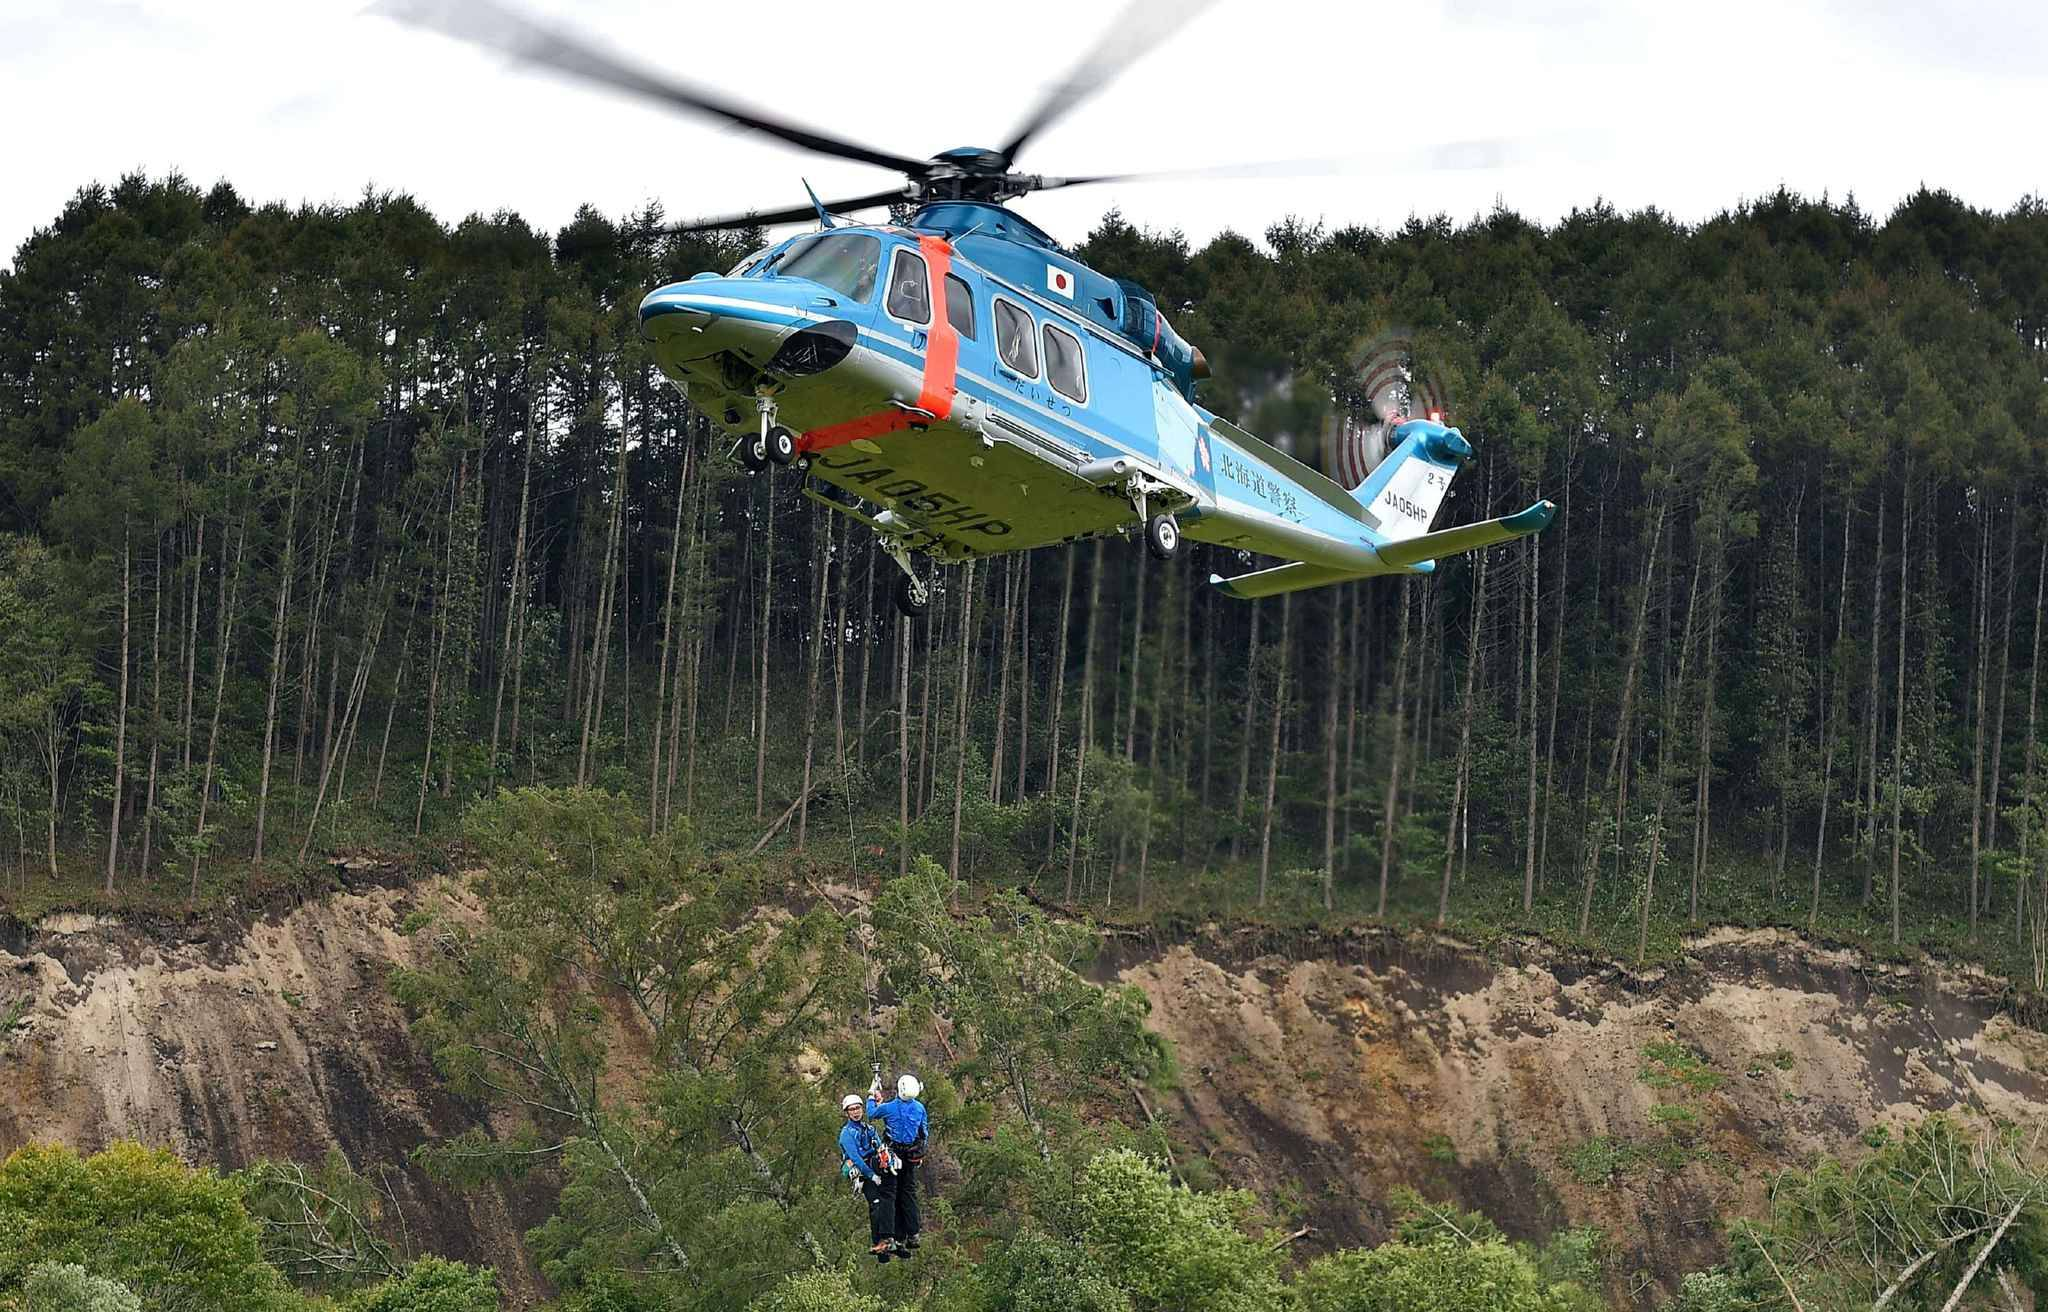 A man is rescued in Atsuma Town, Hokkaido on Sep.6, 2018. The severe earthquake registering a strong 6 on the Japanese seismic scale in Abira Town, Iburi district of Hokkaido occurred at a.m. 3 on September 6th. According to the Meteorological Agency, the depth of the epicenter was estimated to be about 37 kilometers, and the indicative magnitude is estimated to be 6.7.